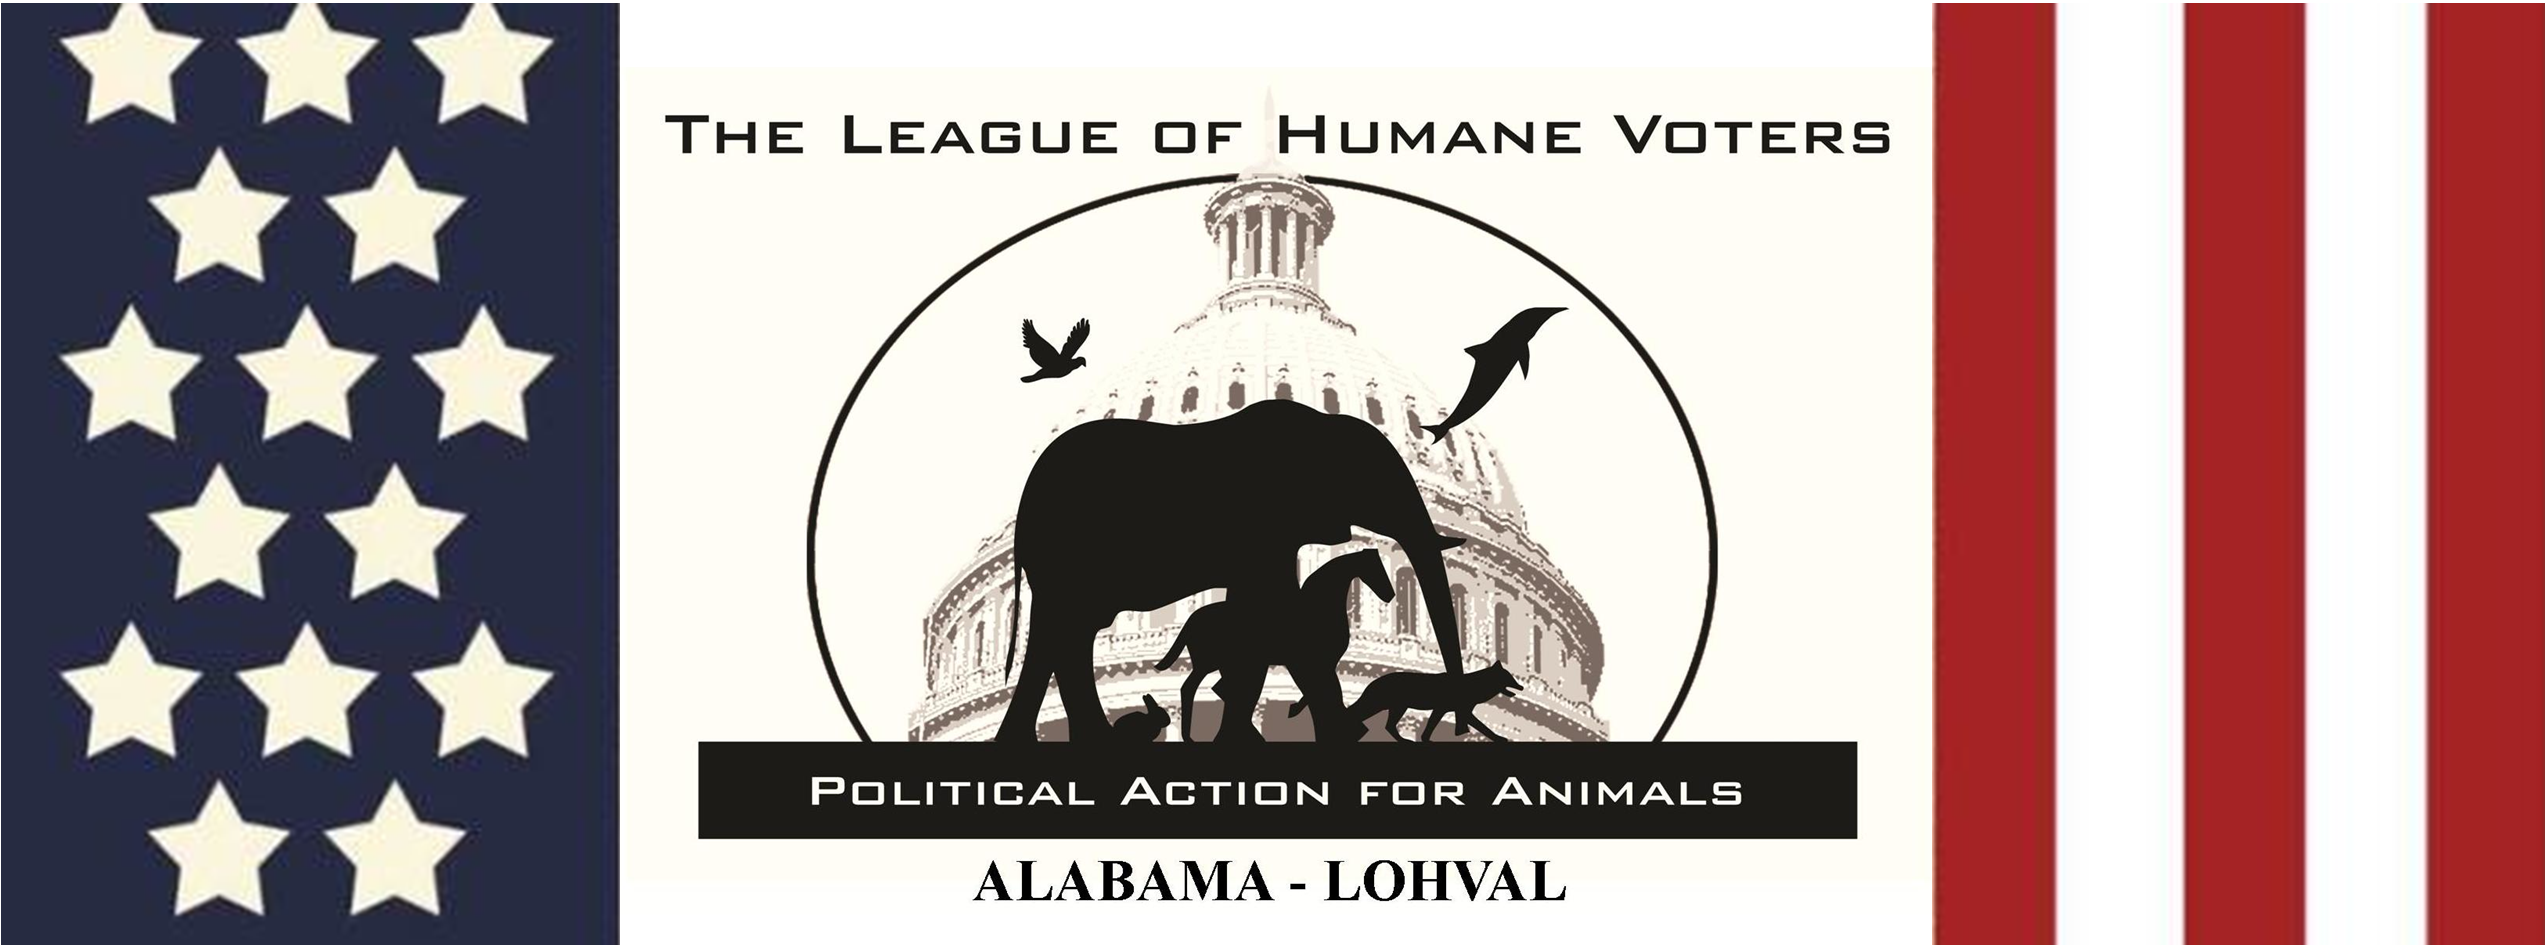 Lohval: A Visit To The Alabama Statehouse